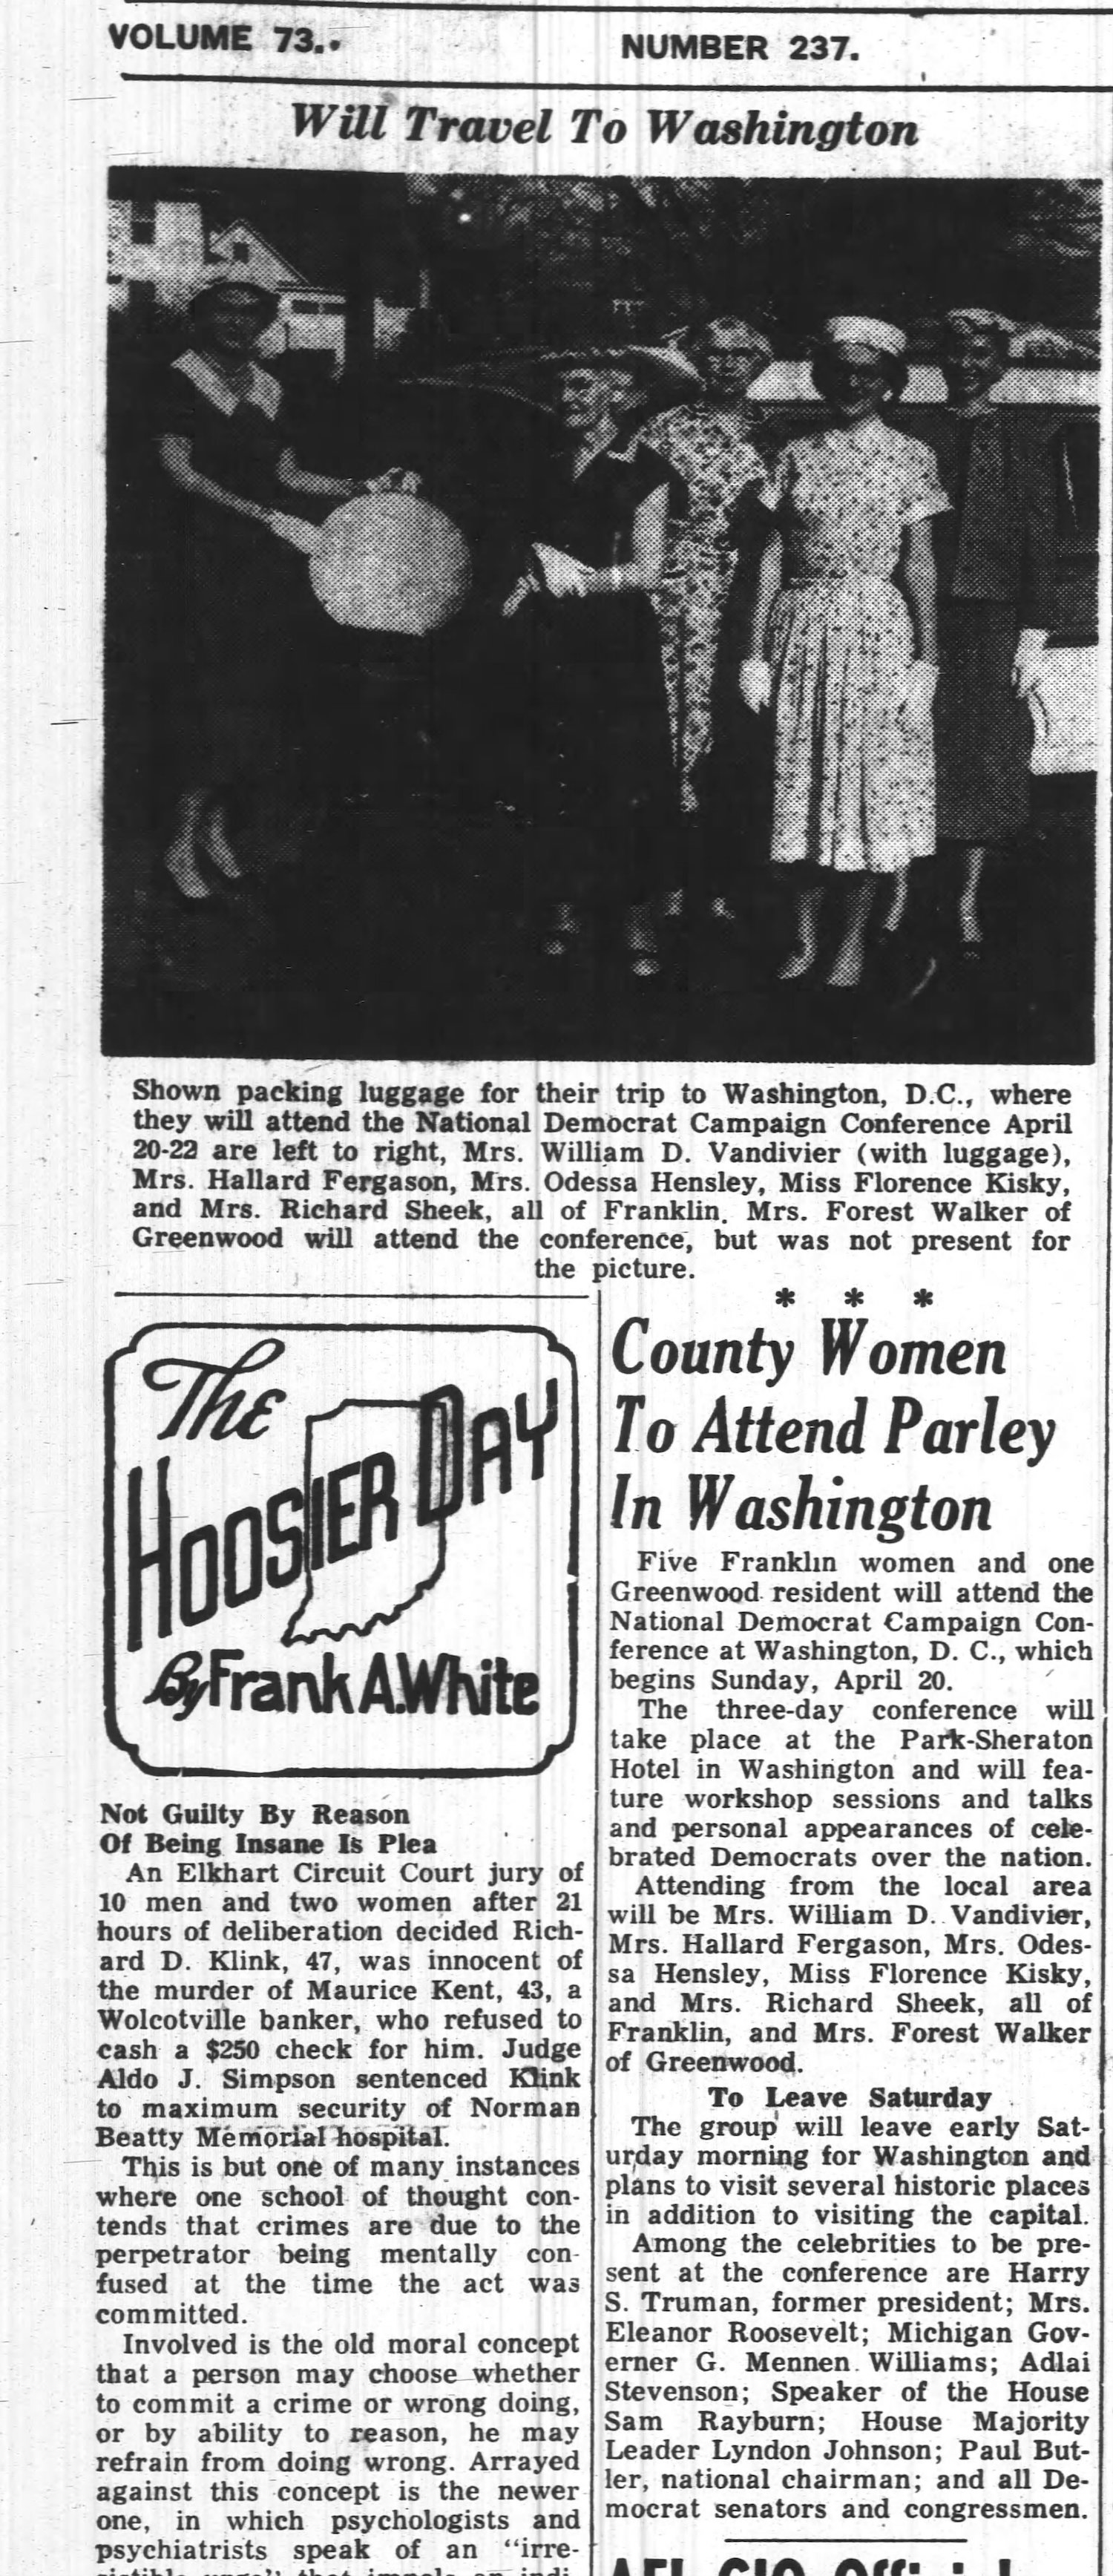 vintage newspaper clipping